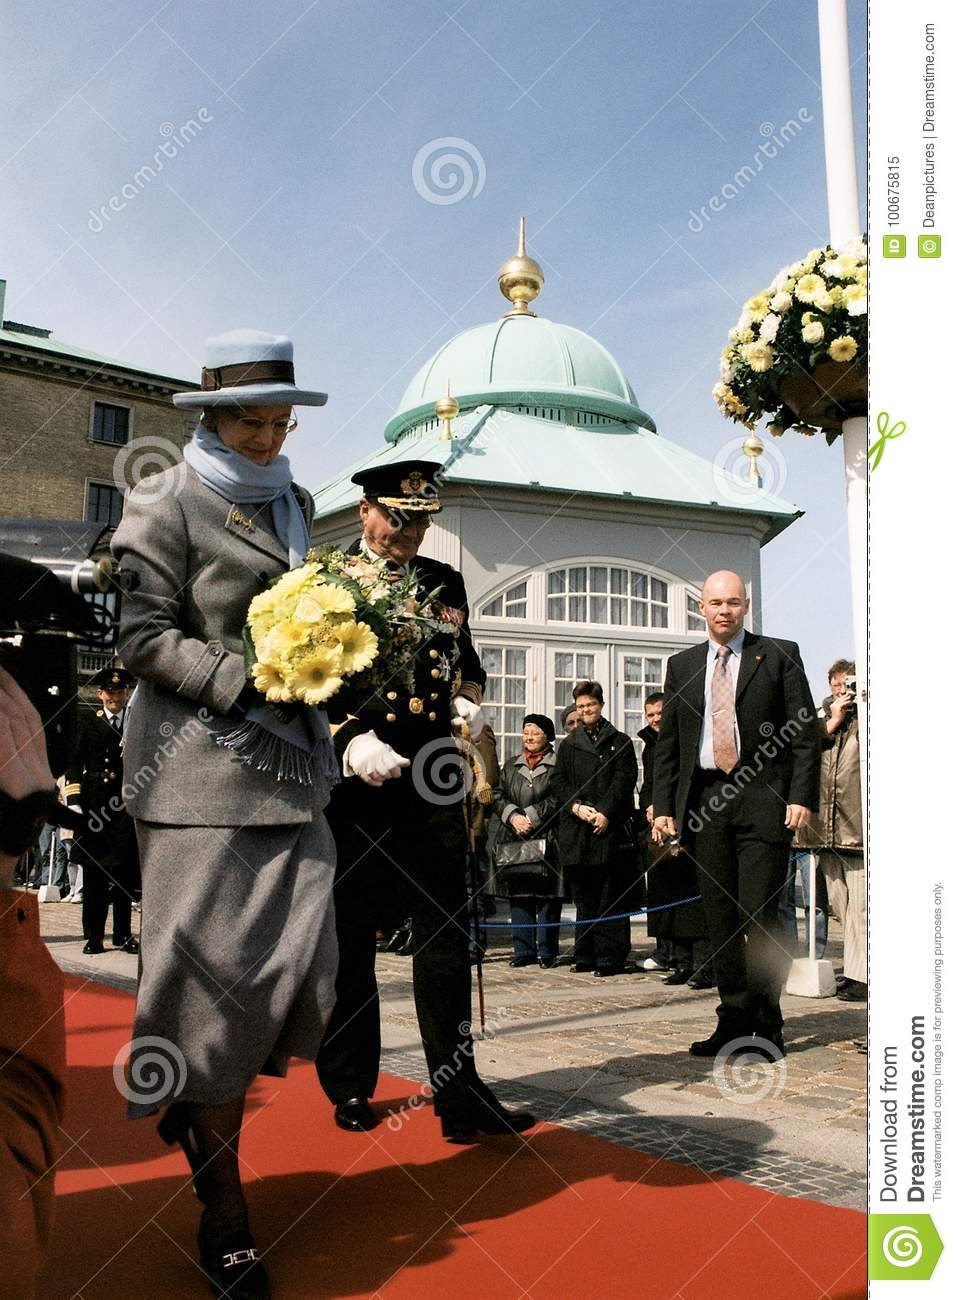 Download QUEEN MARGRETHE II AND PRINCE HENRIK OF DENMARK Editorial Image - Image of images, illunstration: 100675815